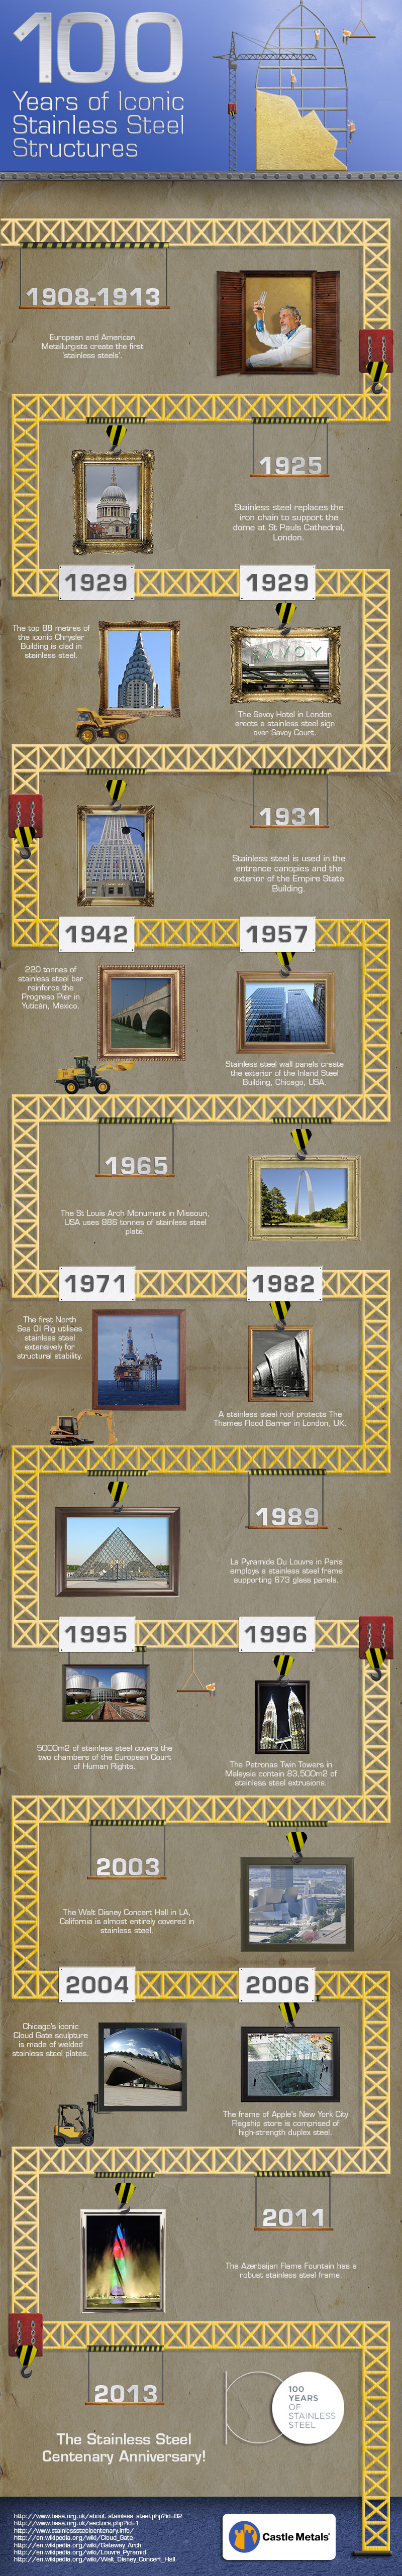 100 Years of Iconic Stainless Steel Structures